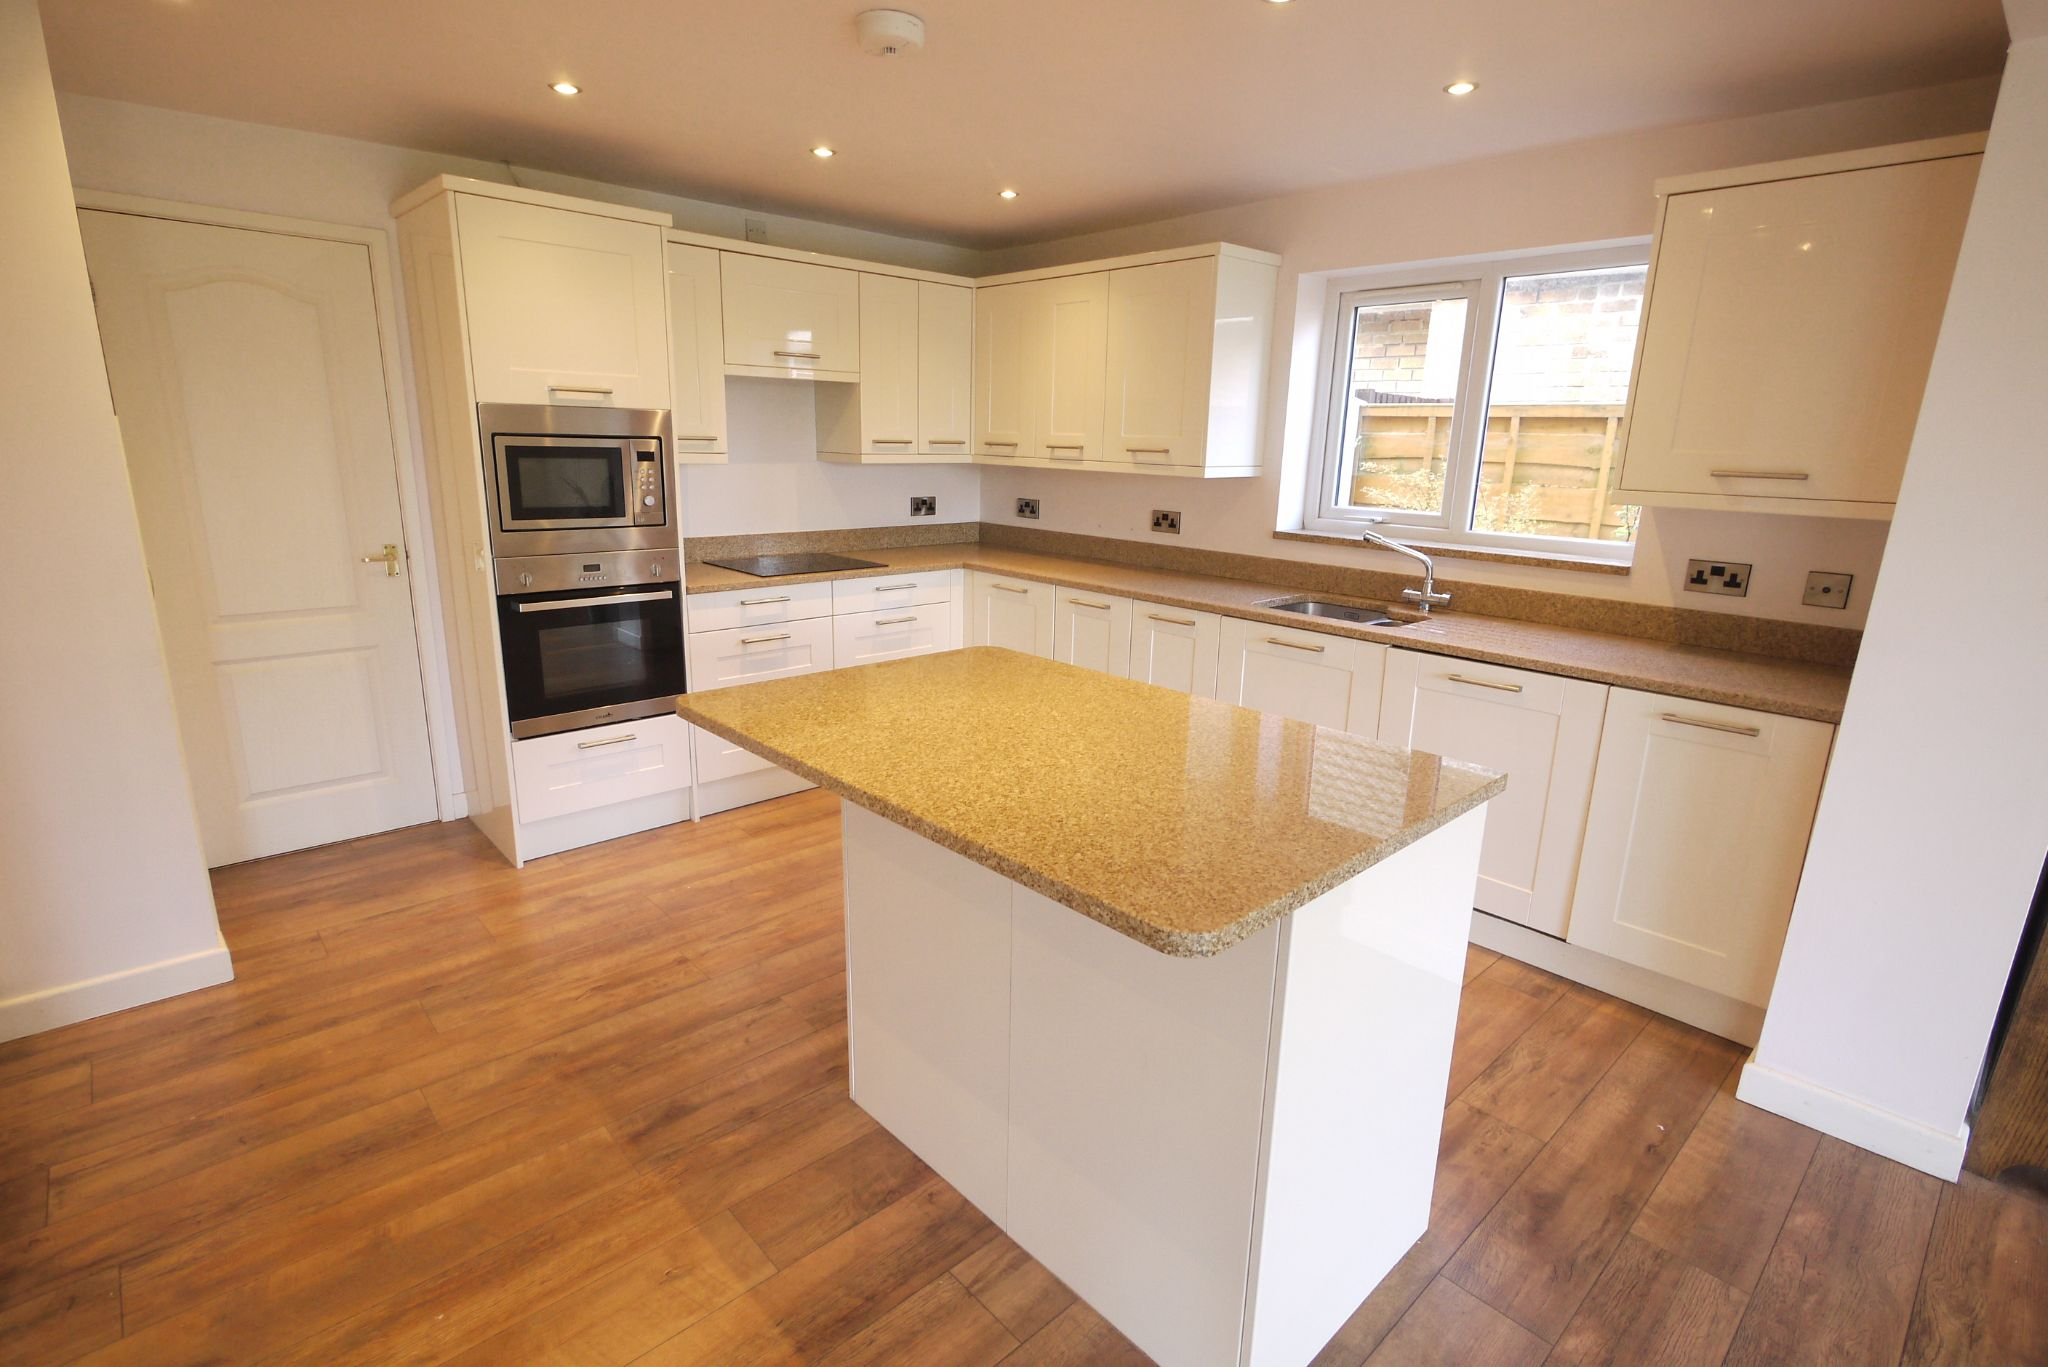 3 bedroom detached house SSTC in Brighouse - Photograph 3.